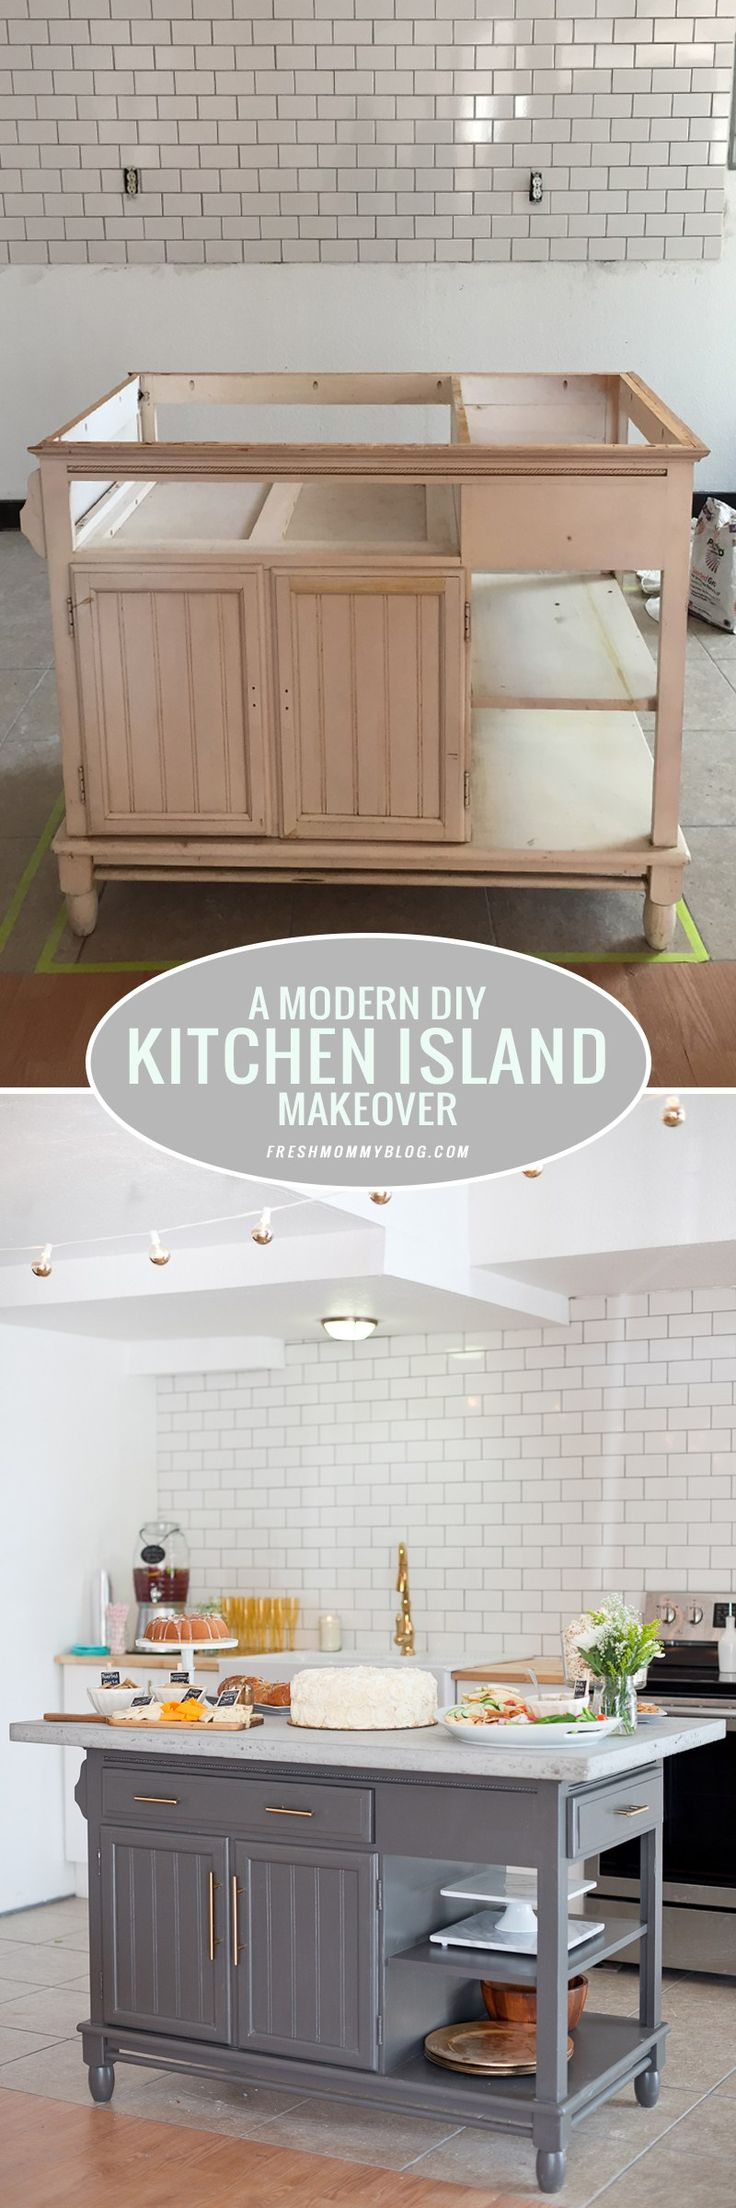 Kitchen Remodel Ideas With Islands depiction of curved kitchen island ideas for modern homes 25 Best Kitchen Island Makeover Ideas On Pinterest Peninsula Kitchen Diy Painting Cabinets And Country Kitchen